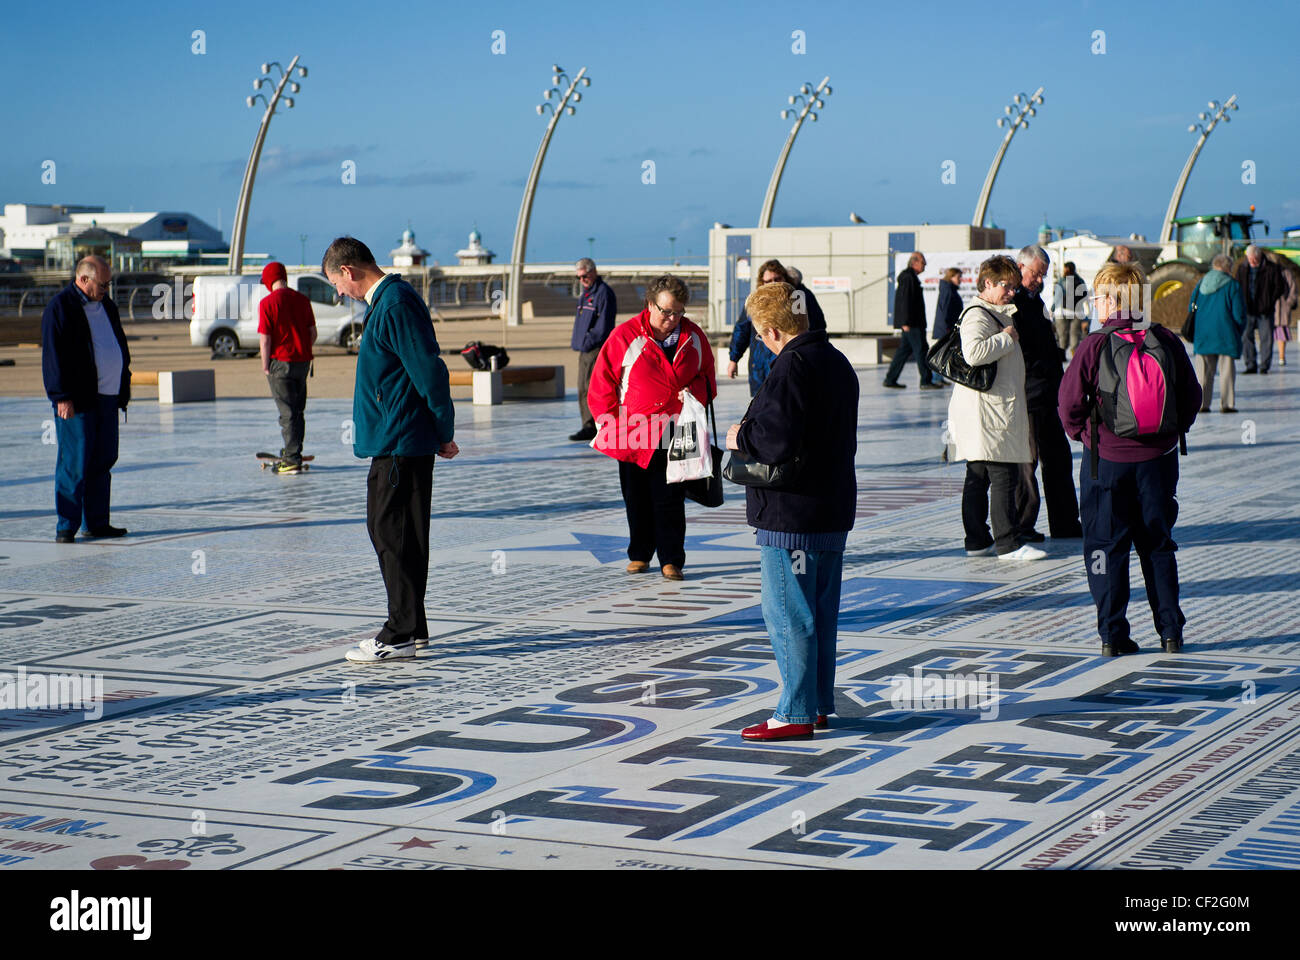 People standing on the Comedy carpet, one of the largest pieces of public art ever commissioned in the UK, on Blackpool - Stock Image